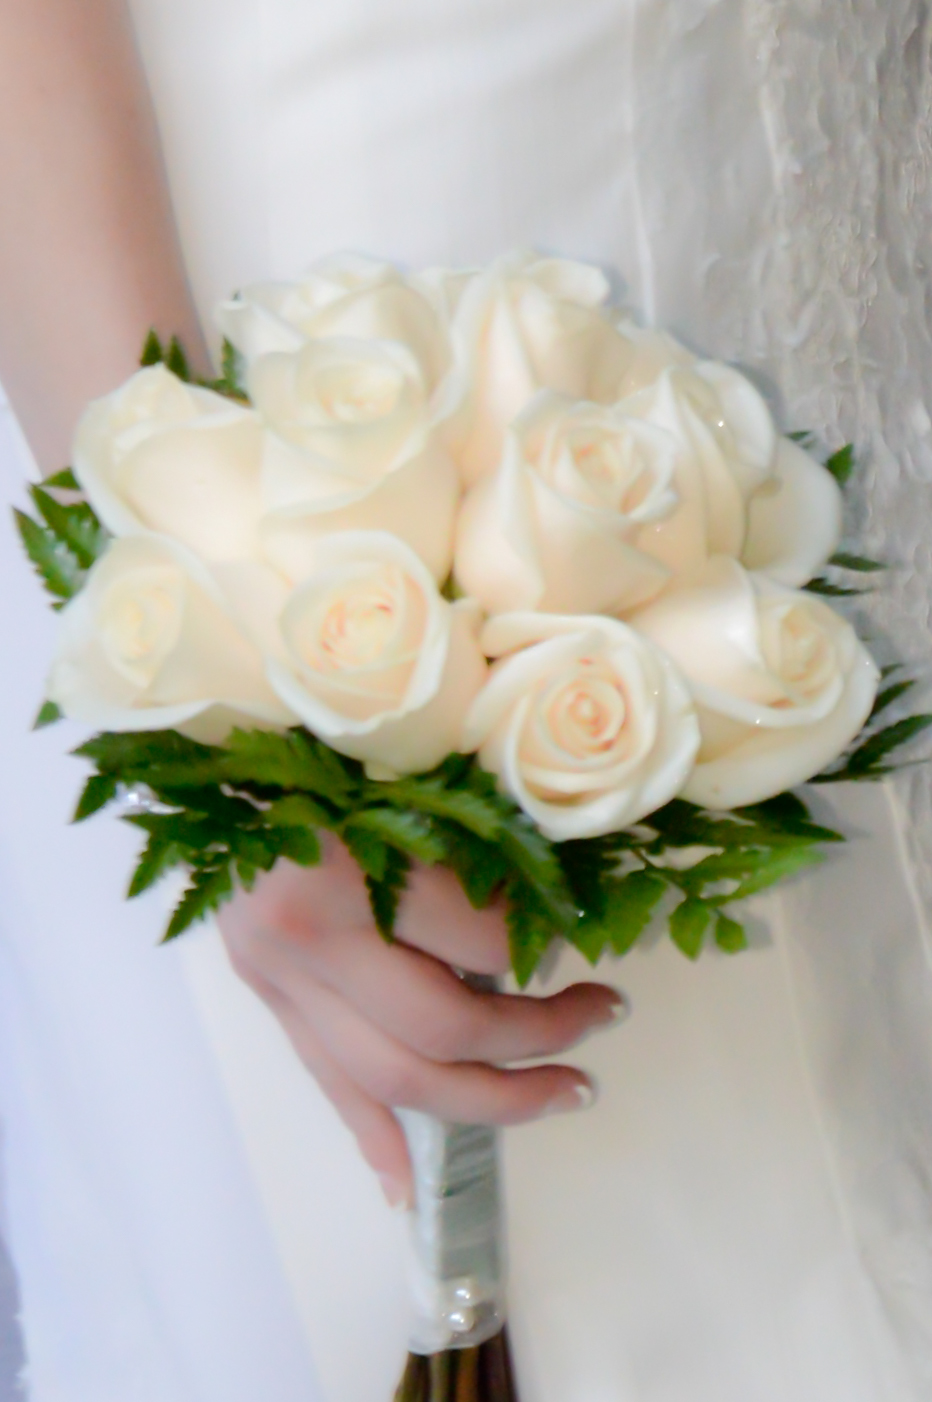 Wedding Bouquet Of White Roses Twelve Rose Hand Tied ...